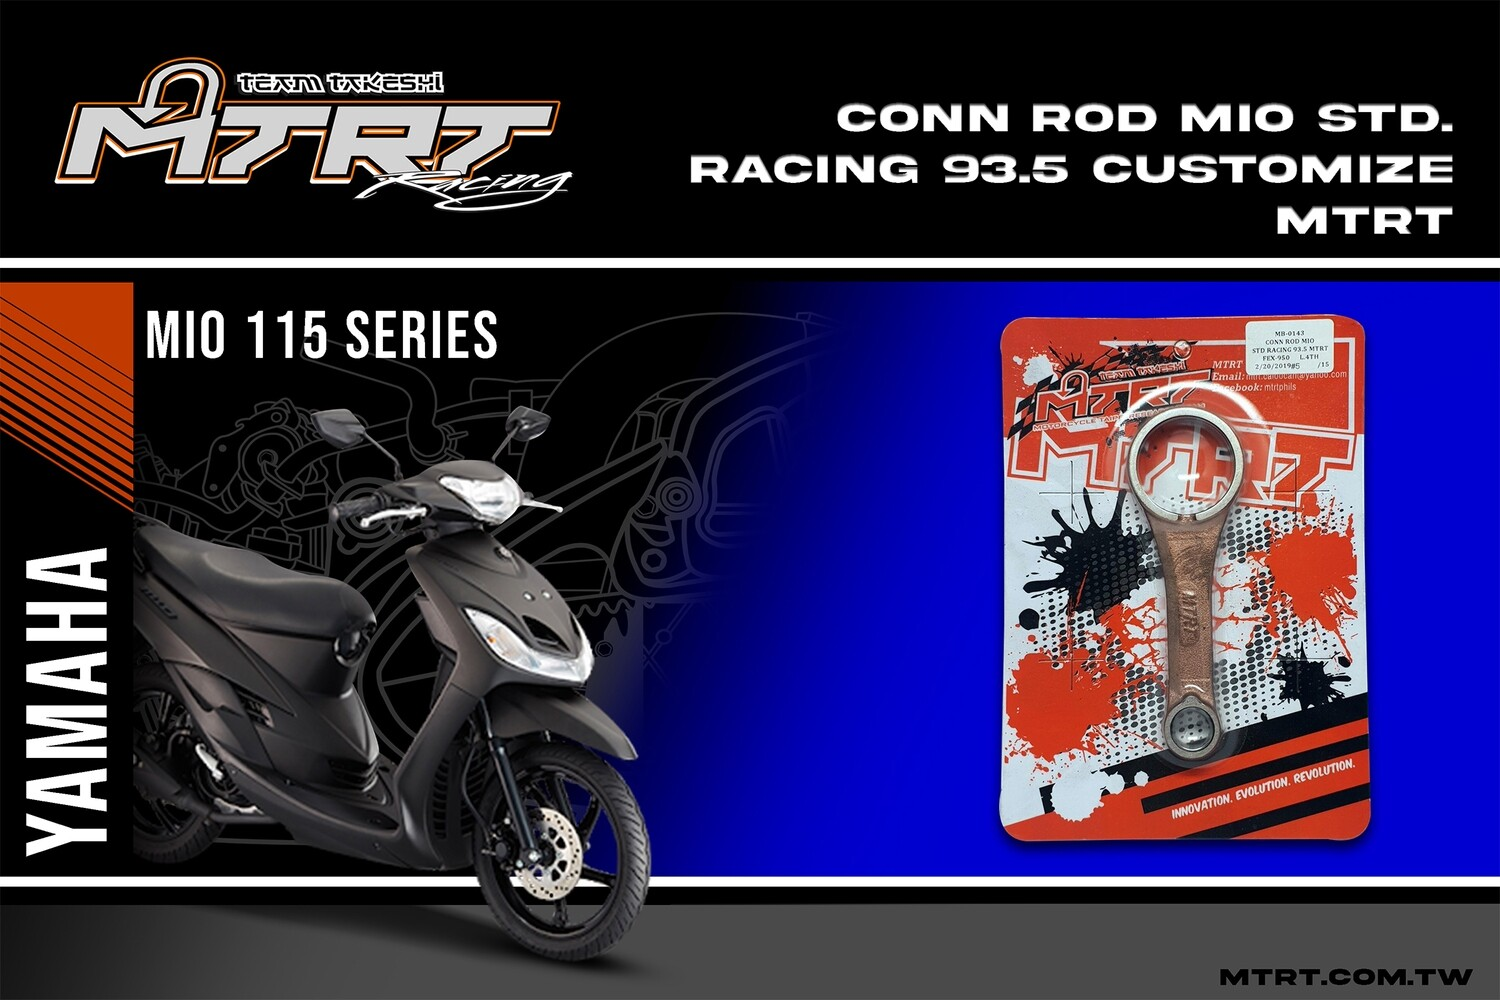 CONN ROD Standard Racing 93.5 customize